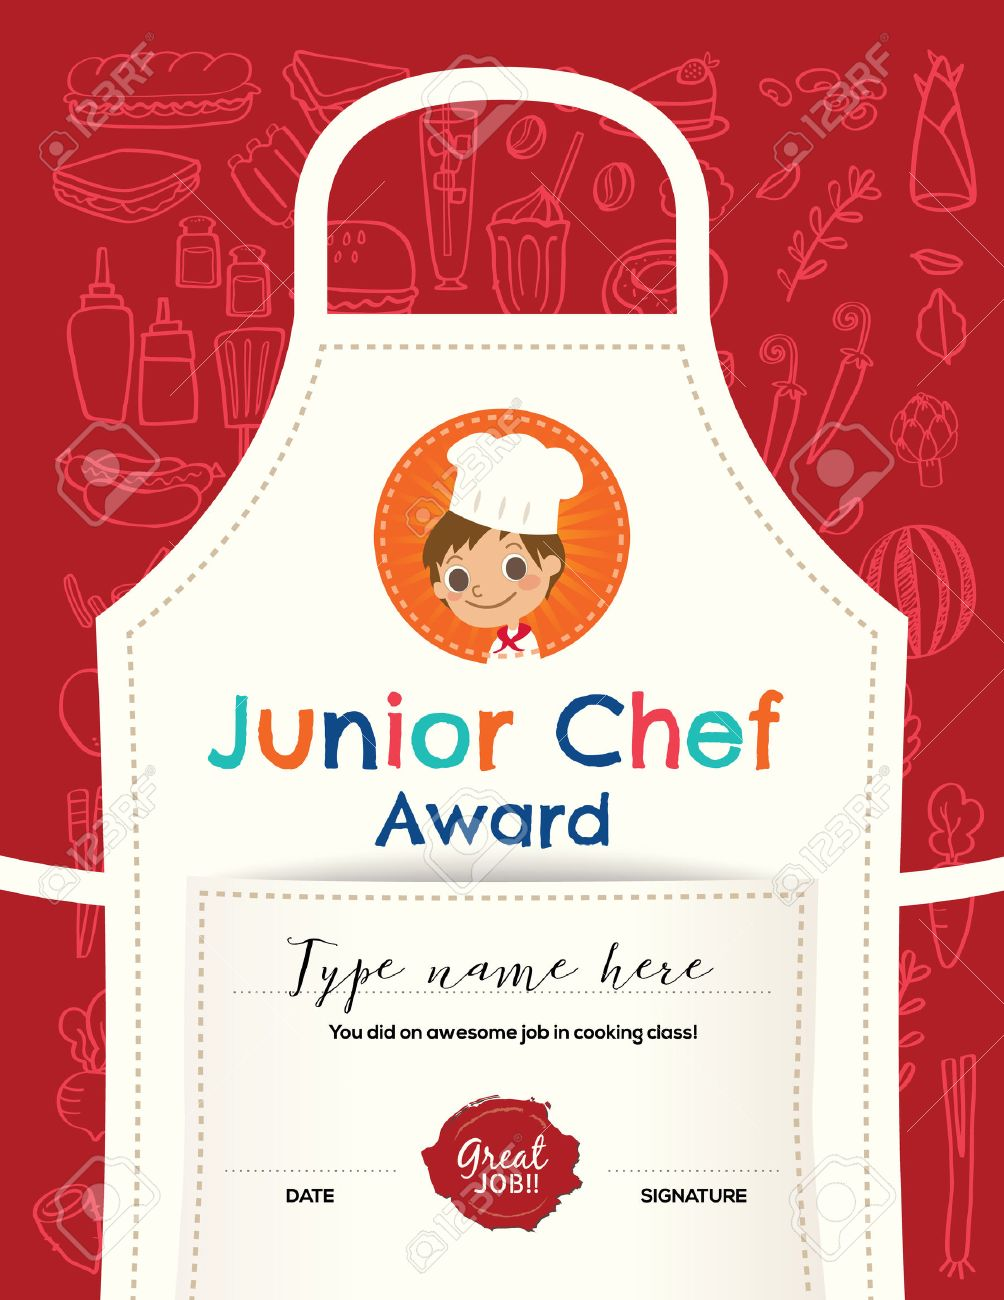 Cooking Certificate Template Unique Kids Cooking Class Certificate Design Template With Junior Chef .